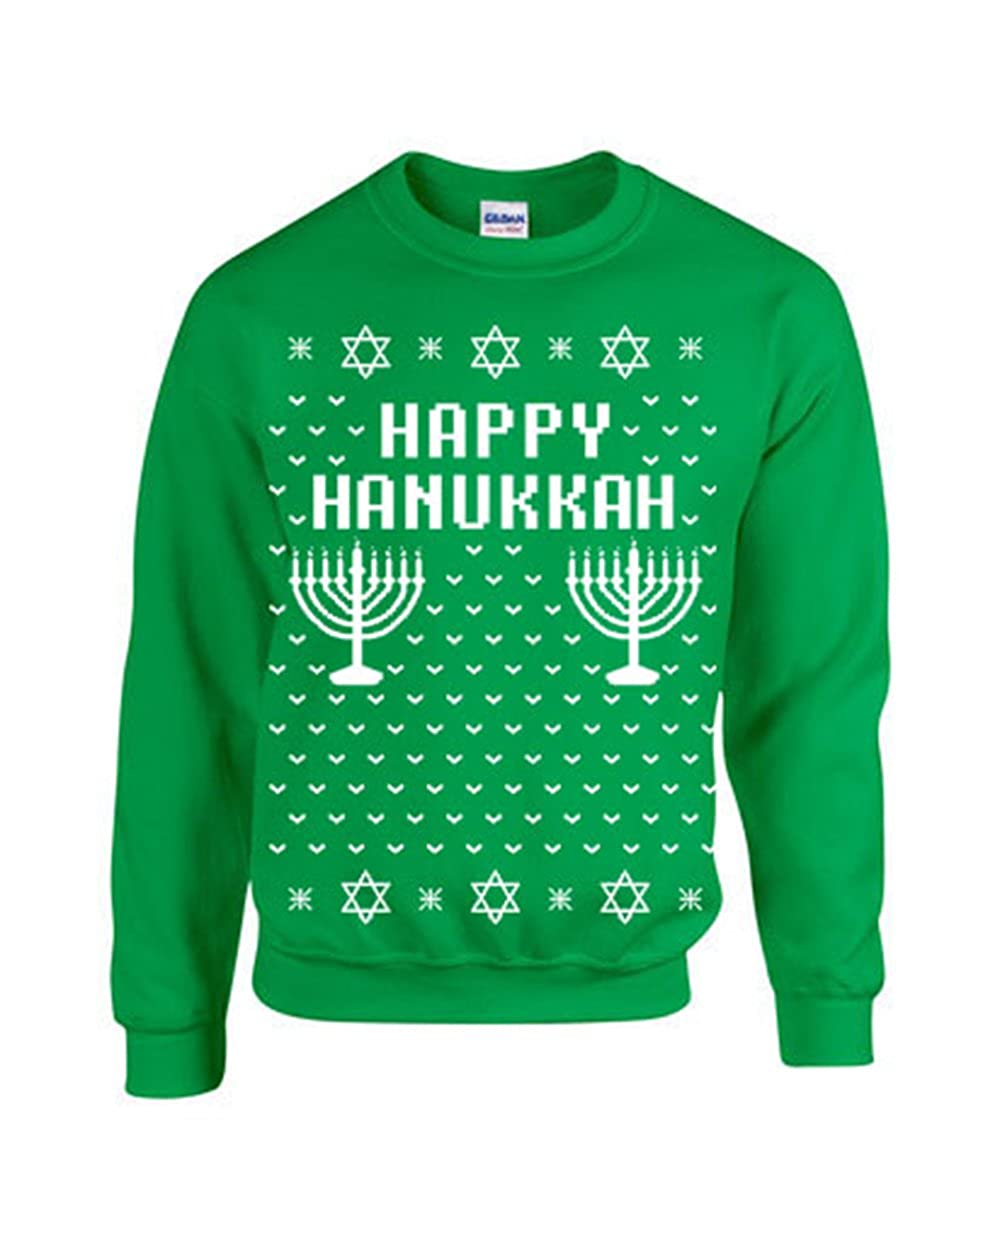 Amazon.com: Happy Hanukkah Ugly Sweater Design CREW Sweatshirt: Clothing